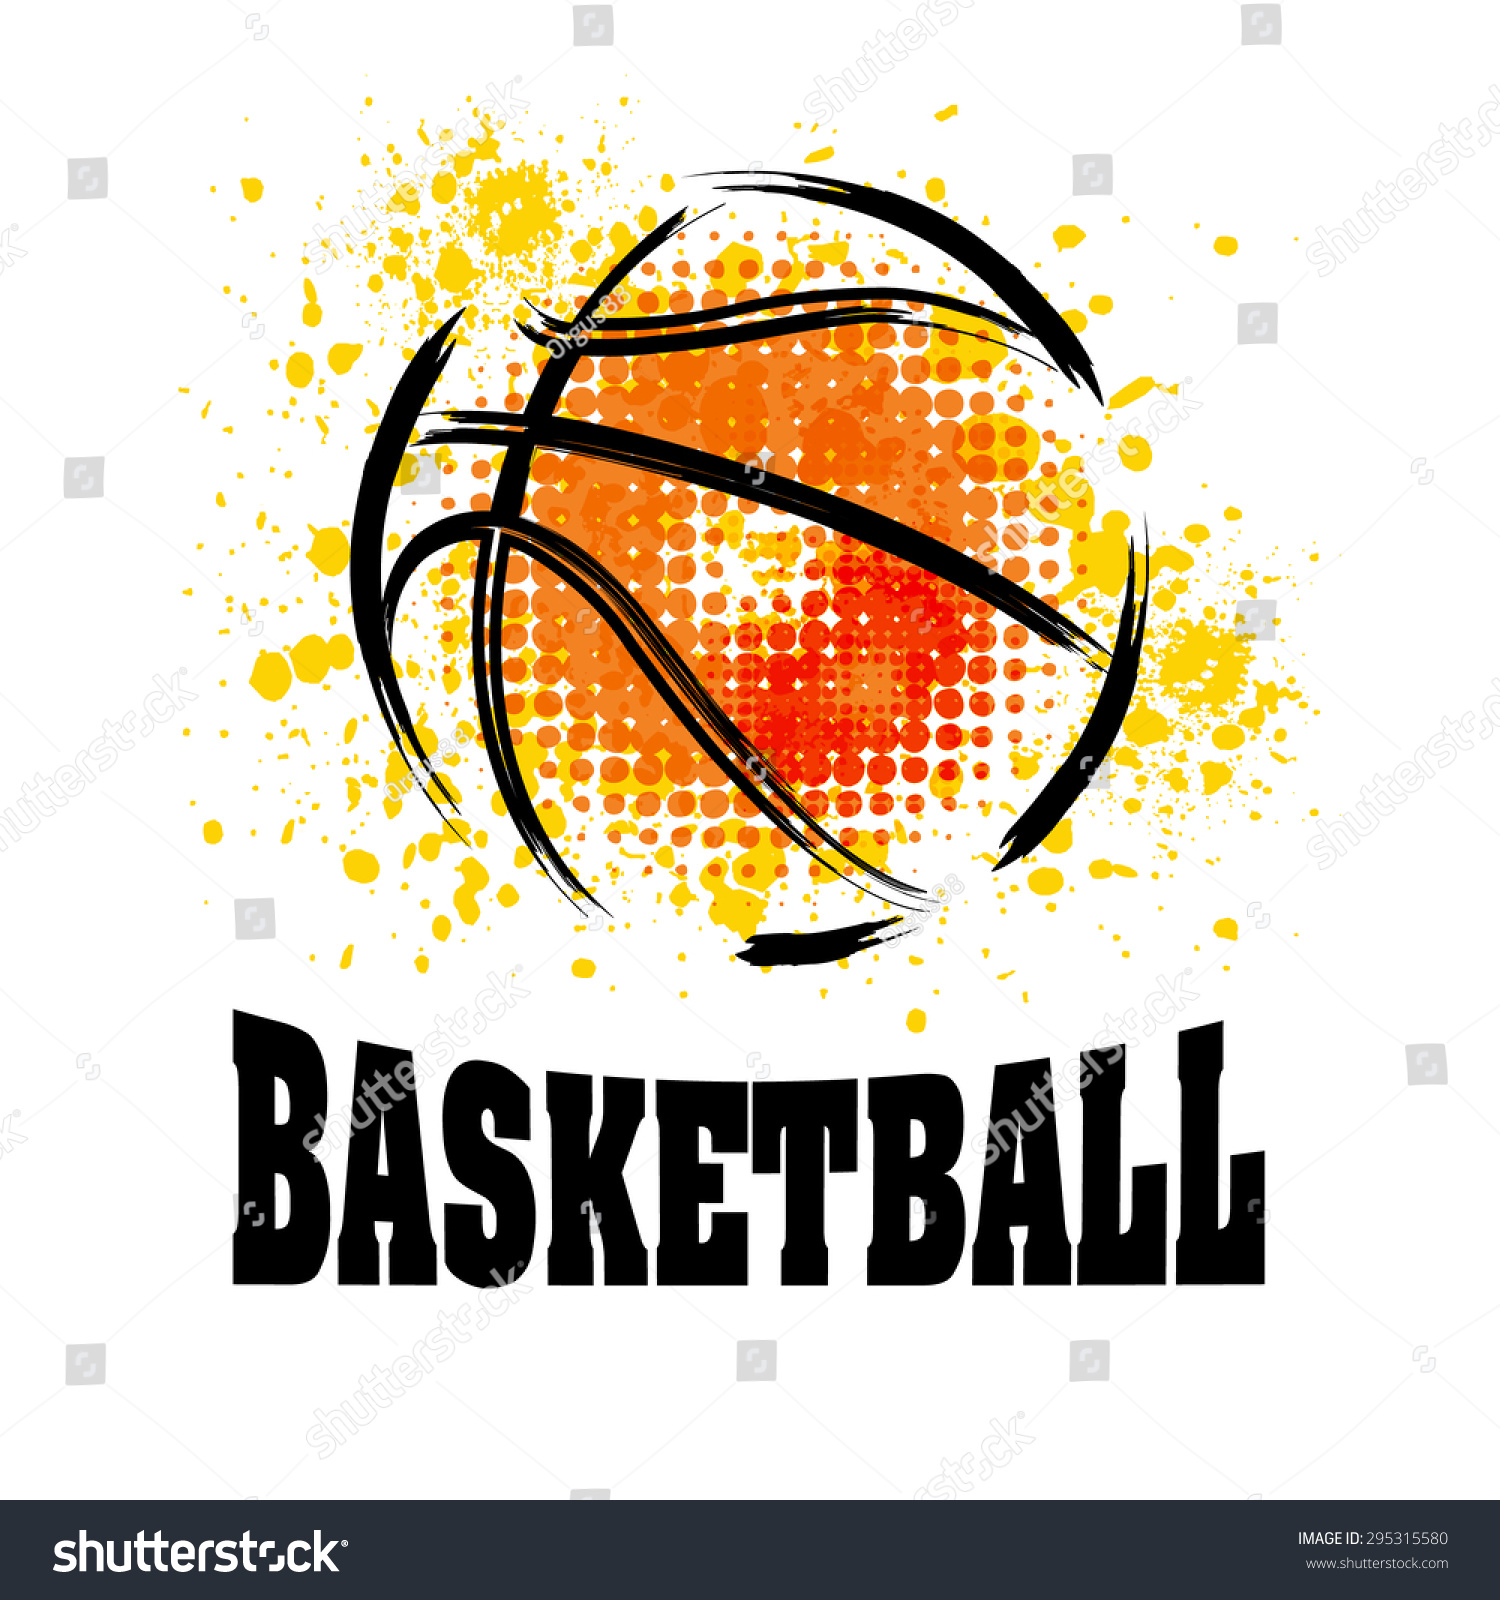 basketball t shirt design editor 56